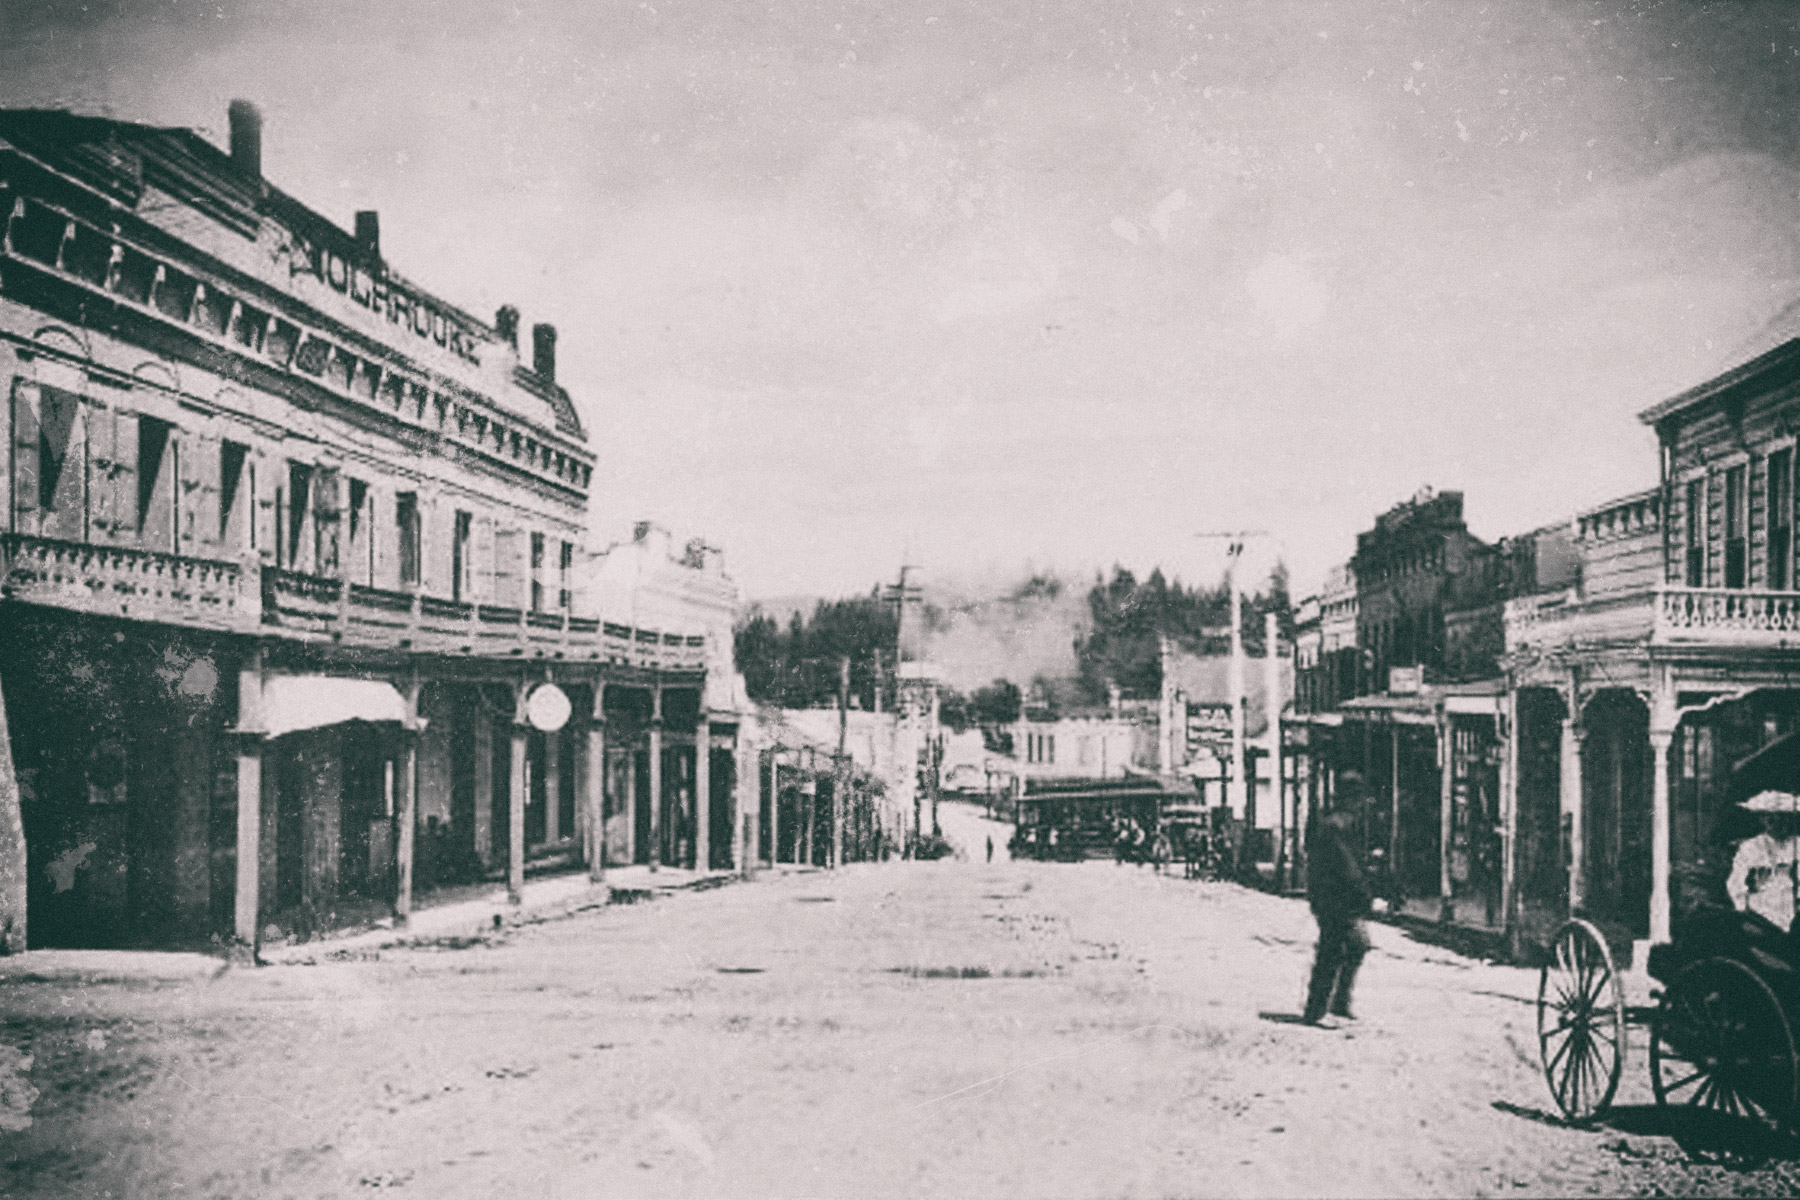 View of Holbrooke Hotel in the 1800s